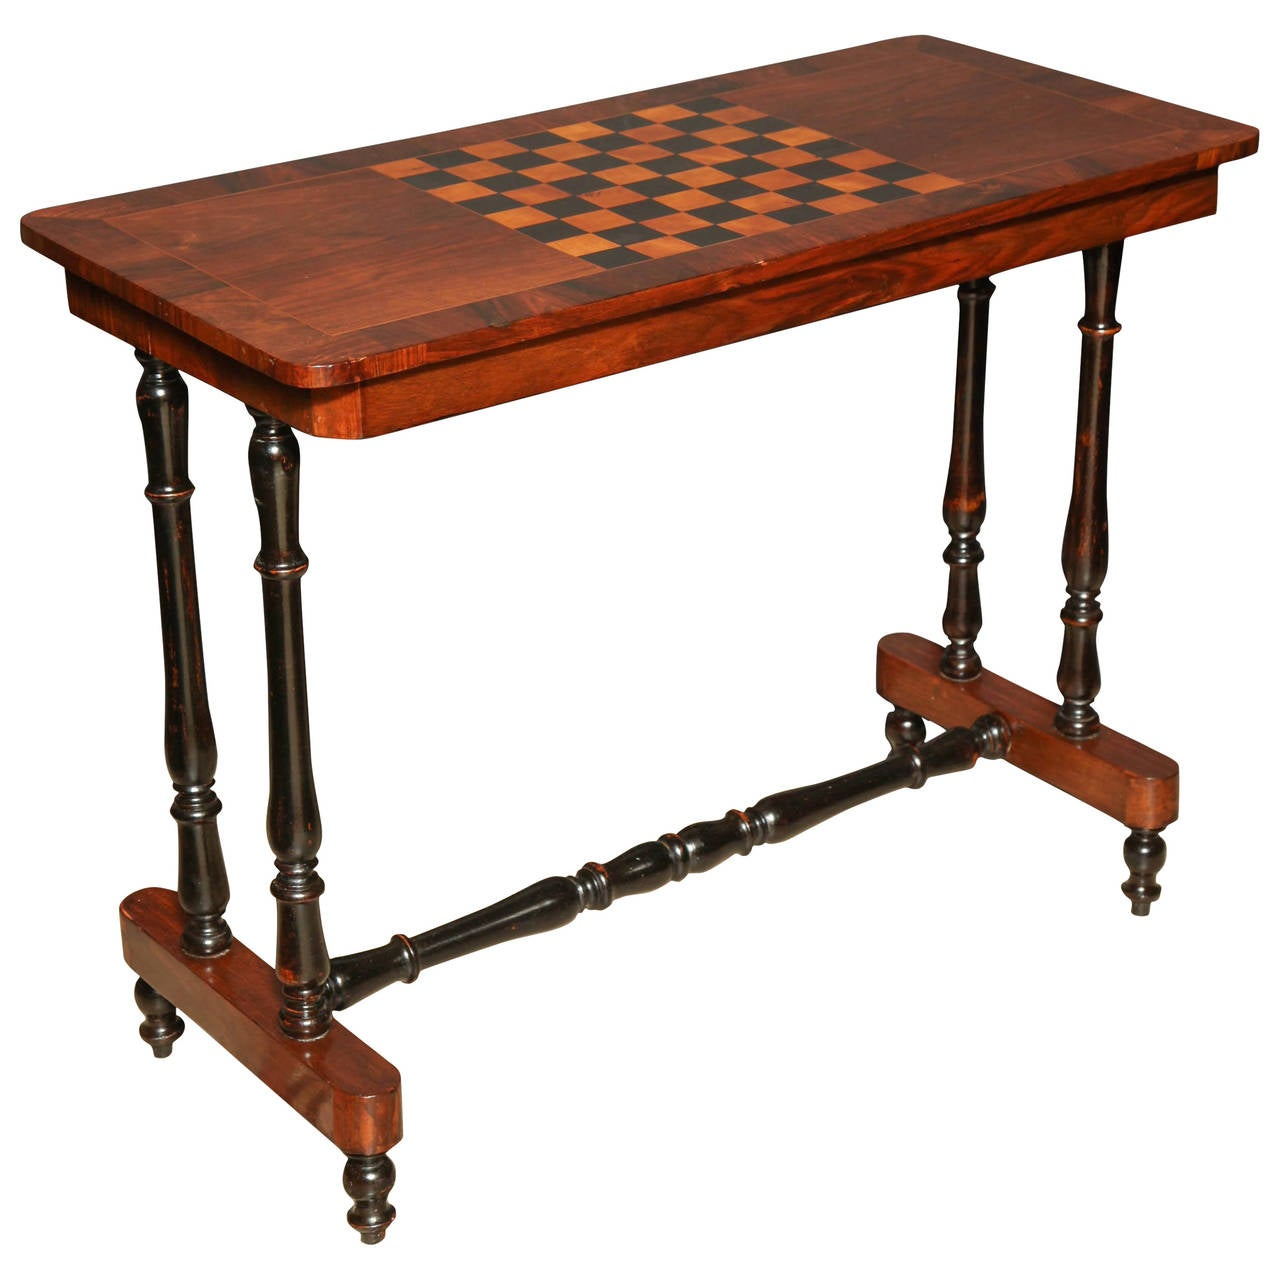 Regency Rosewood Trestle End or Game Table